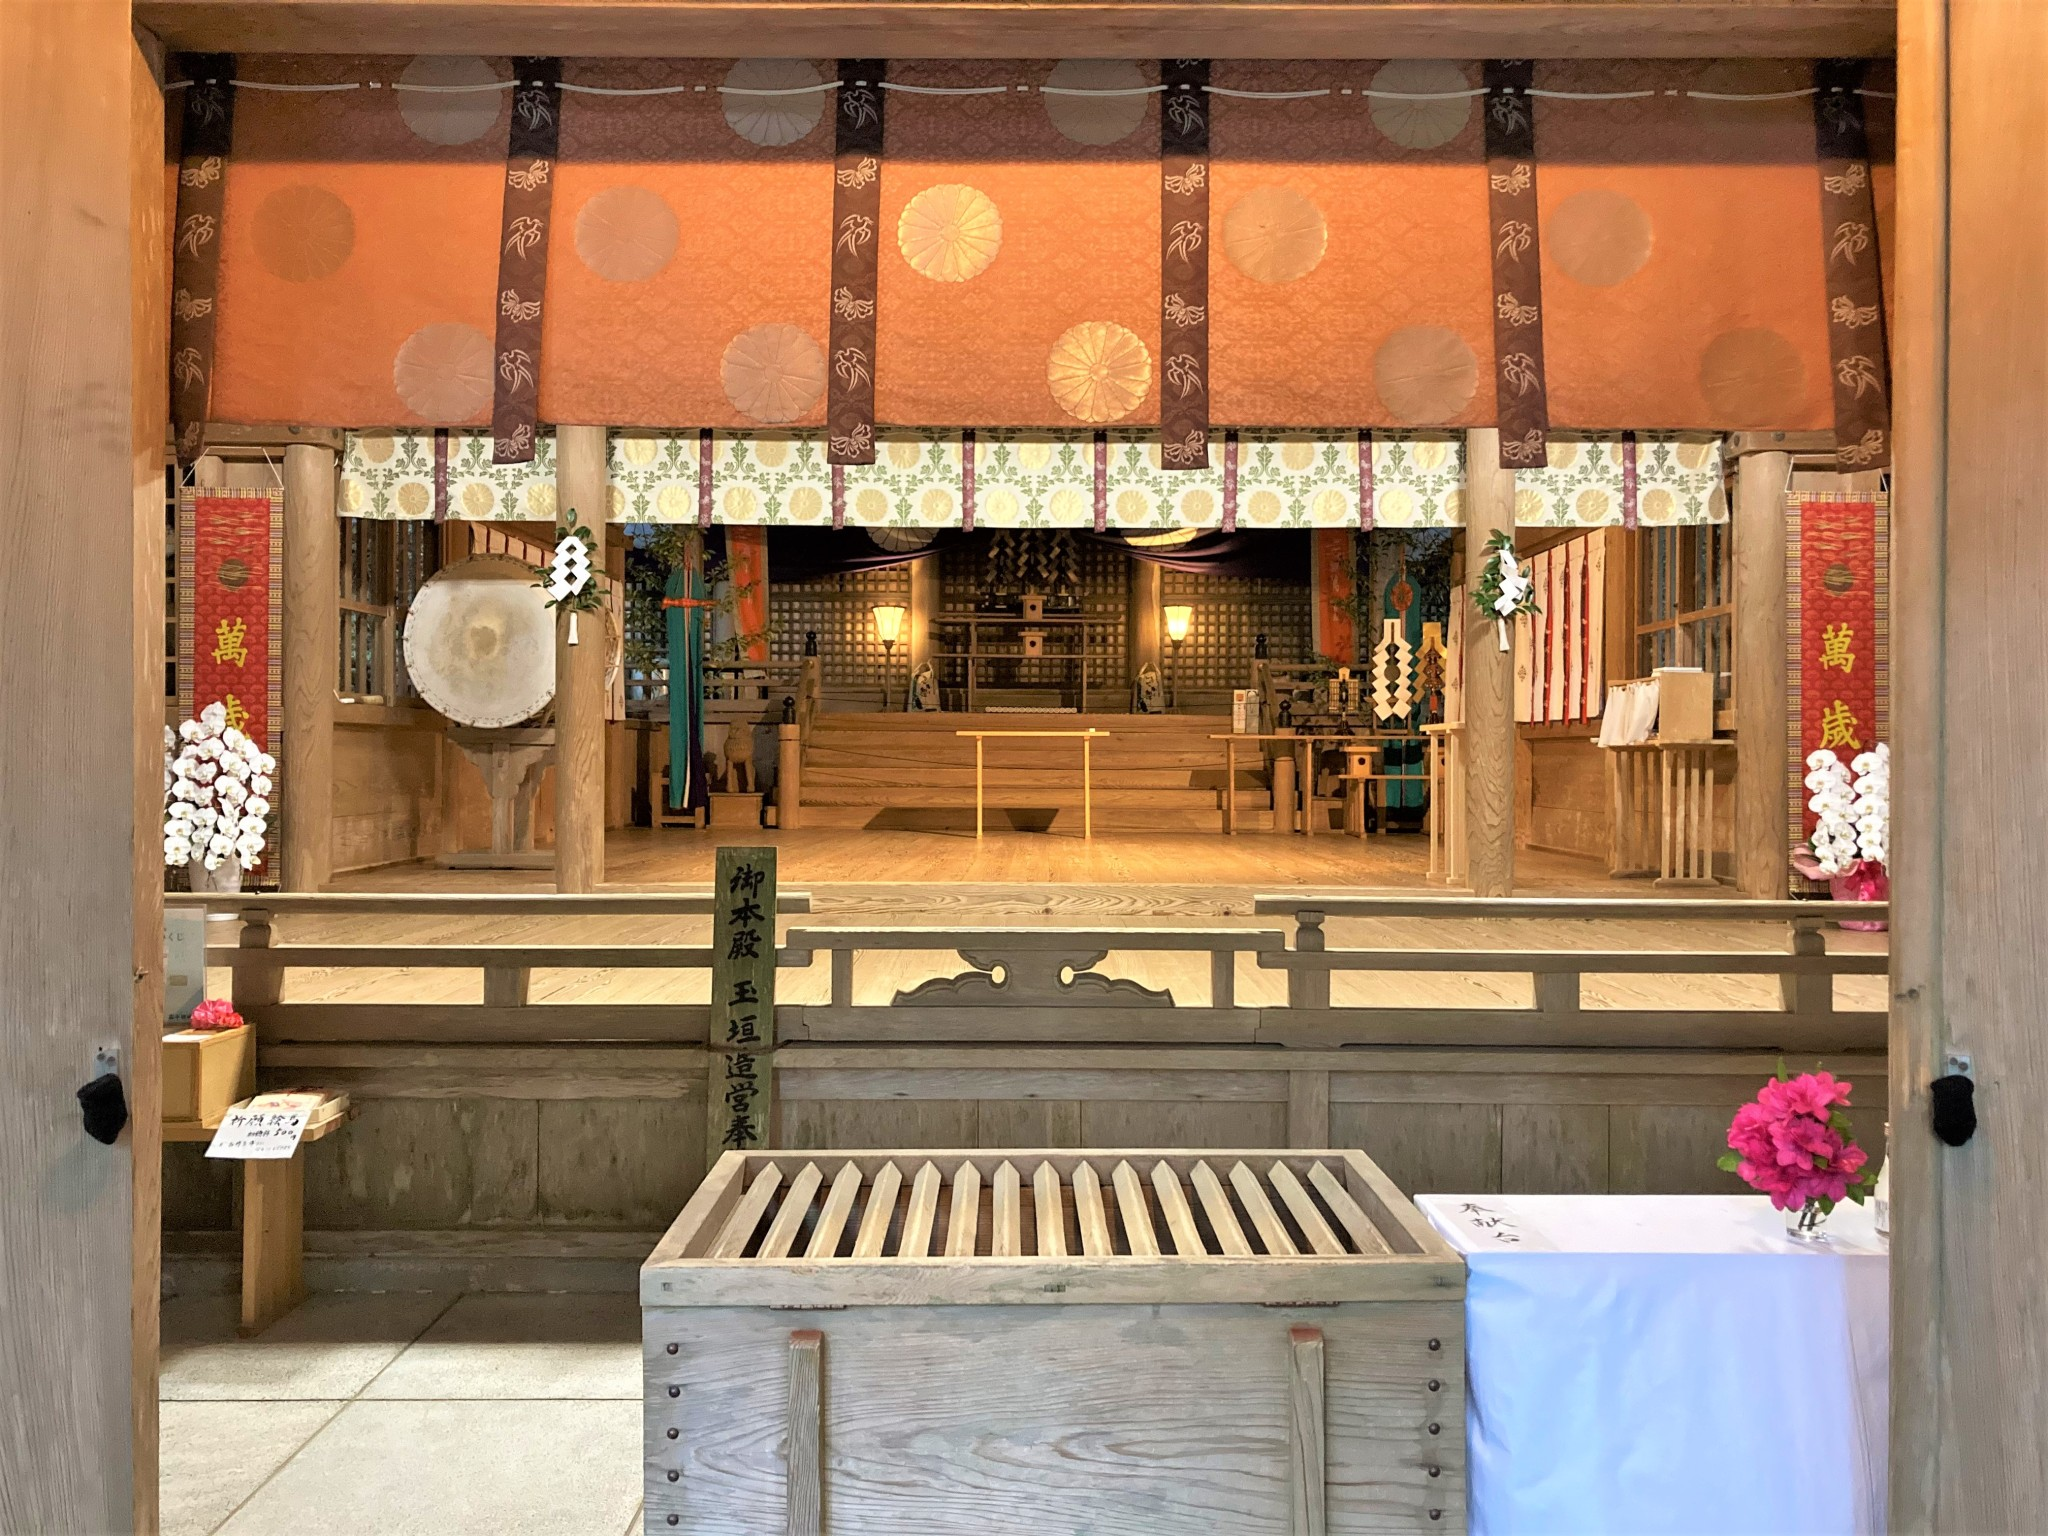 The interior of Takachiho Shrine containing Shinto religious objects and decoration.